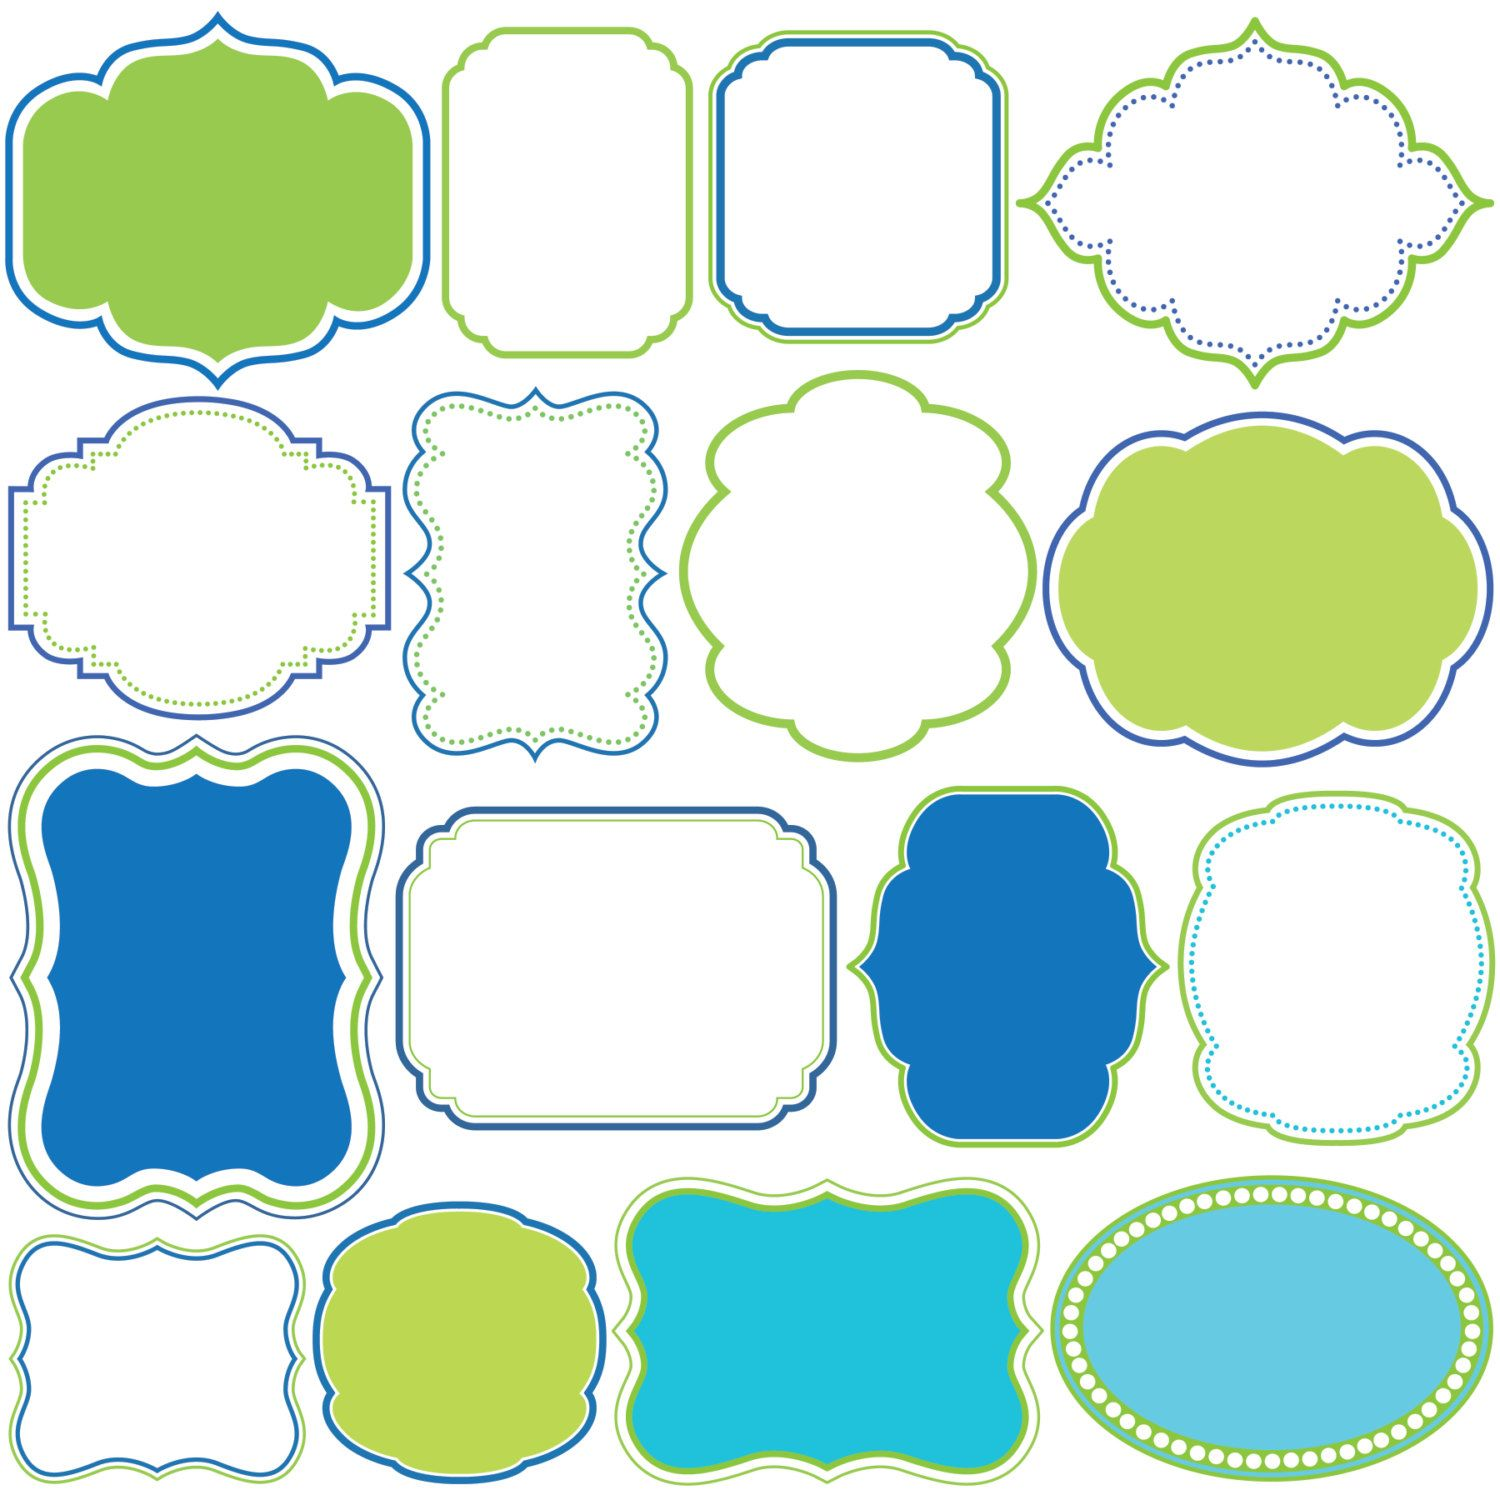 Digital Borders Frames Blue Green Clipart Clip Art Frame Commercial Personal Use Supplies School Teachers Craft